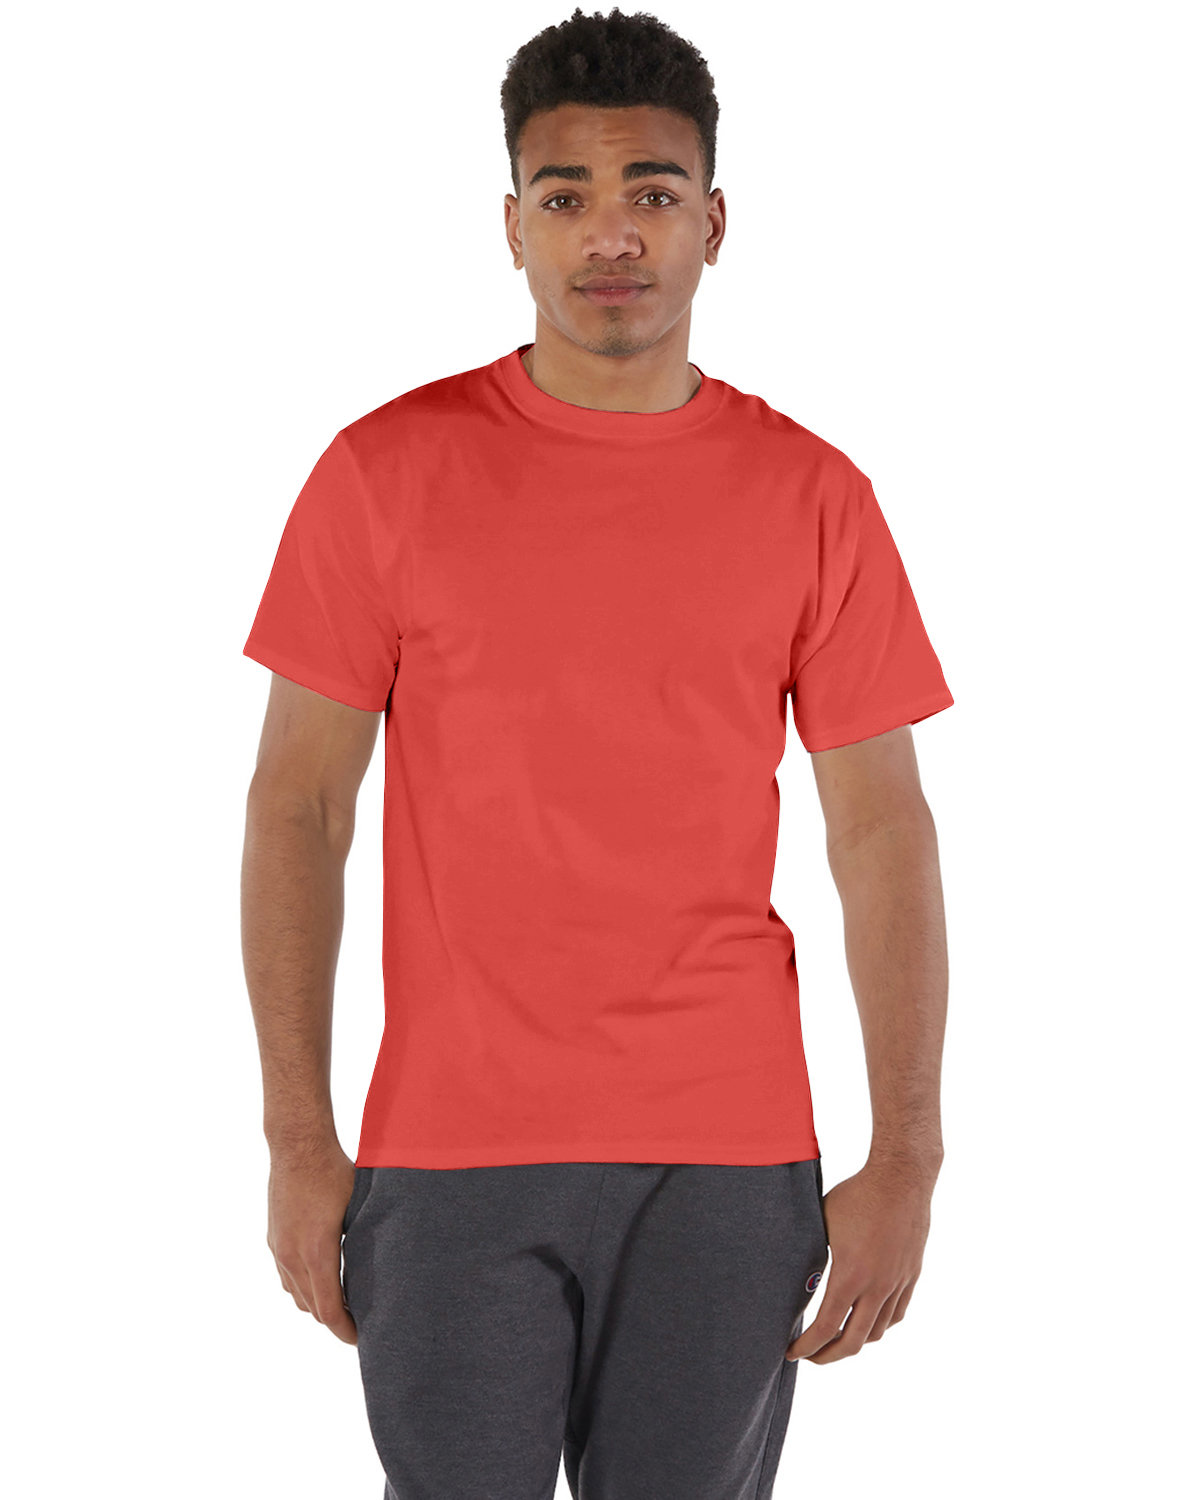 Champion Adult 6 oz. Short-Sleeve T-Shirt RED RIVER CLAY